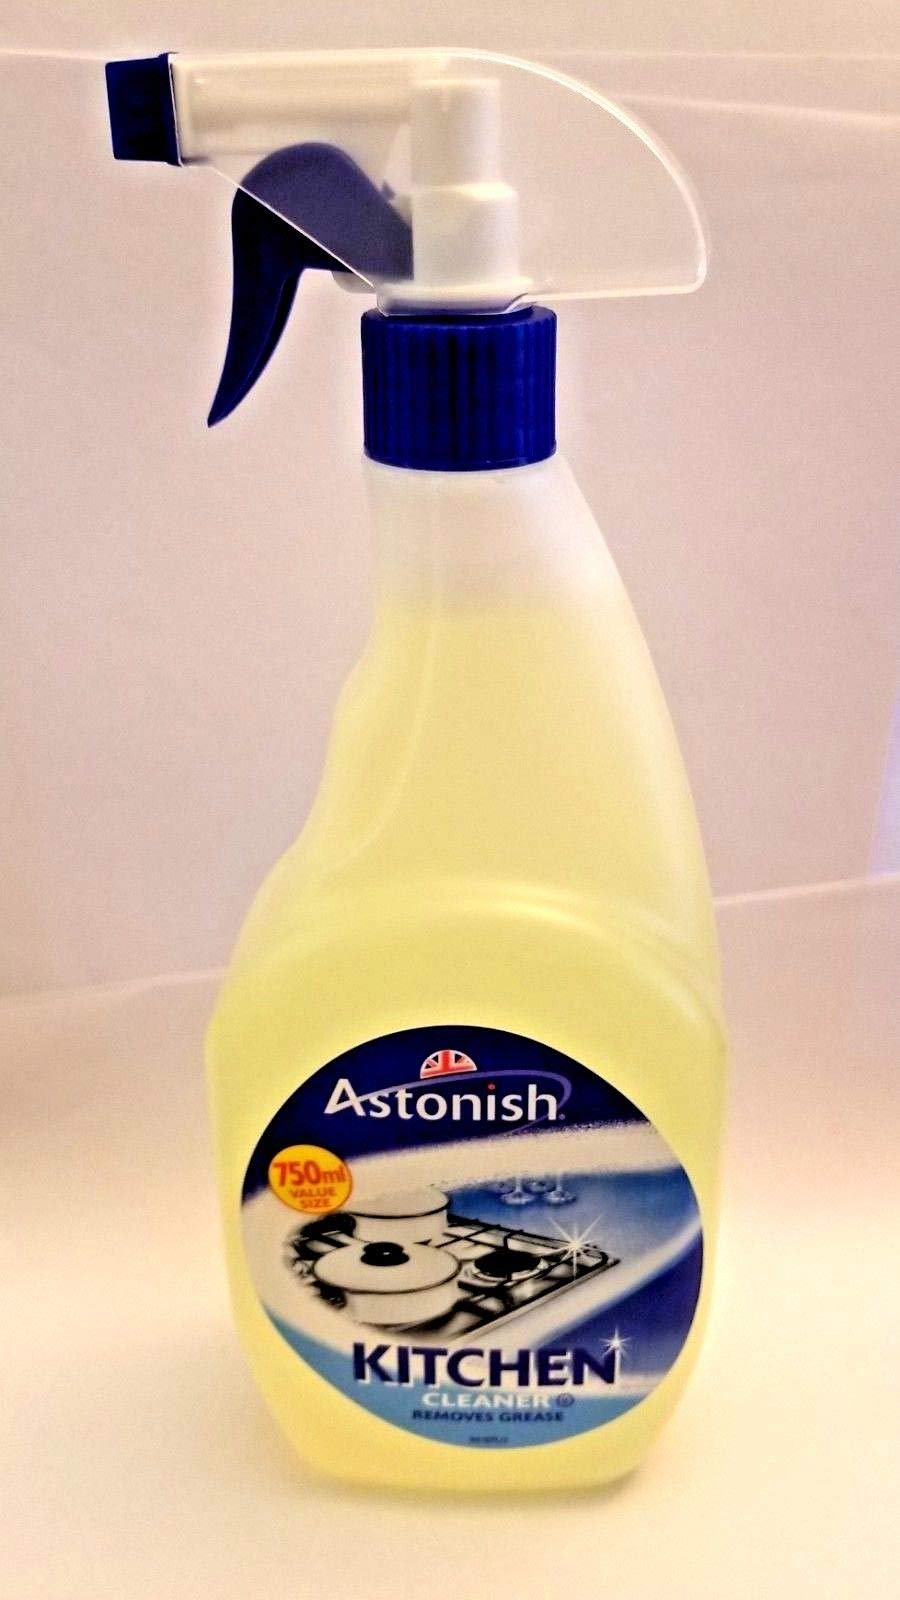 3-PACK Astonish Kitchen Cleaner 750ML by Astonish | Removes Grease | As Seen on TV by Astonish